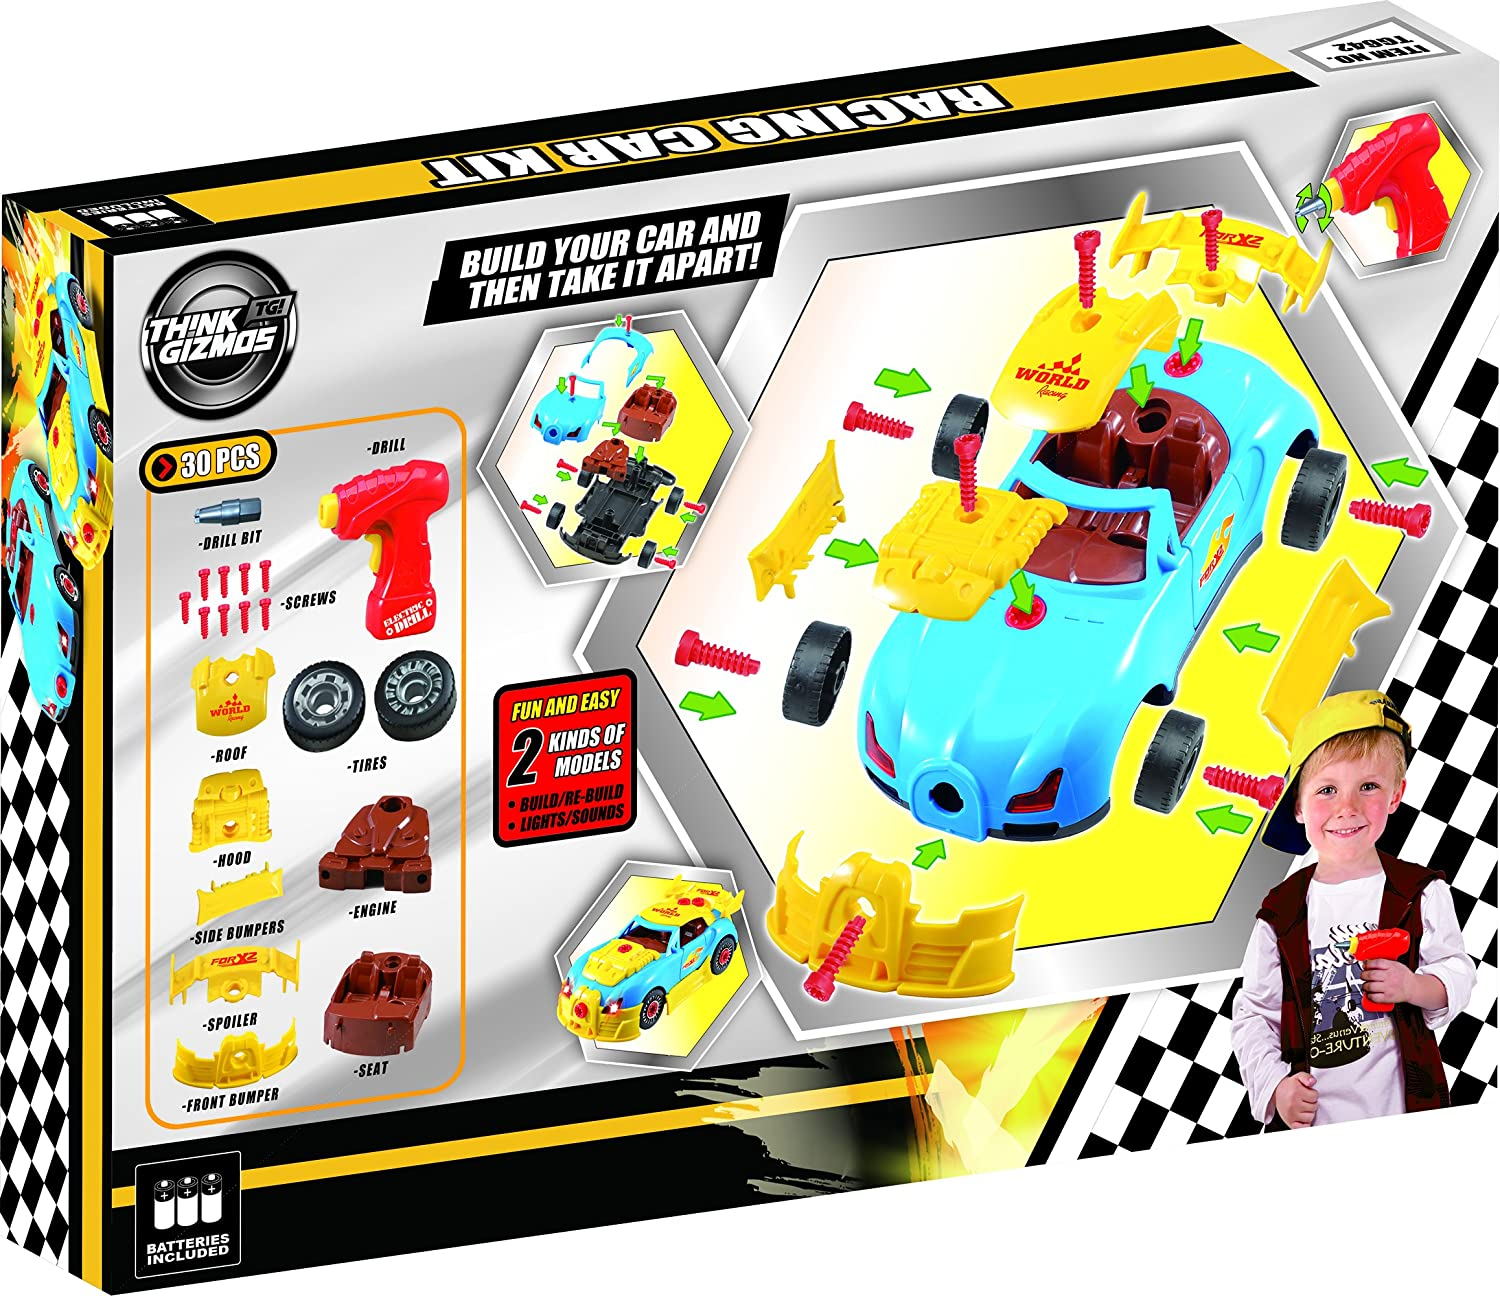 Double Parachute Race Car Kit : Keep warm and have fun with the construction racing car